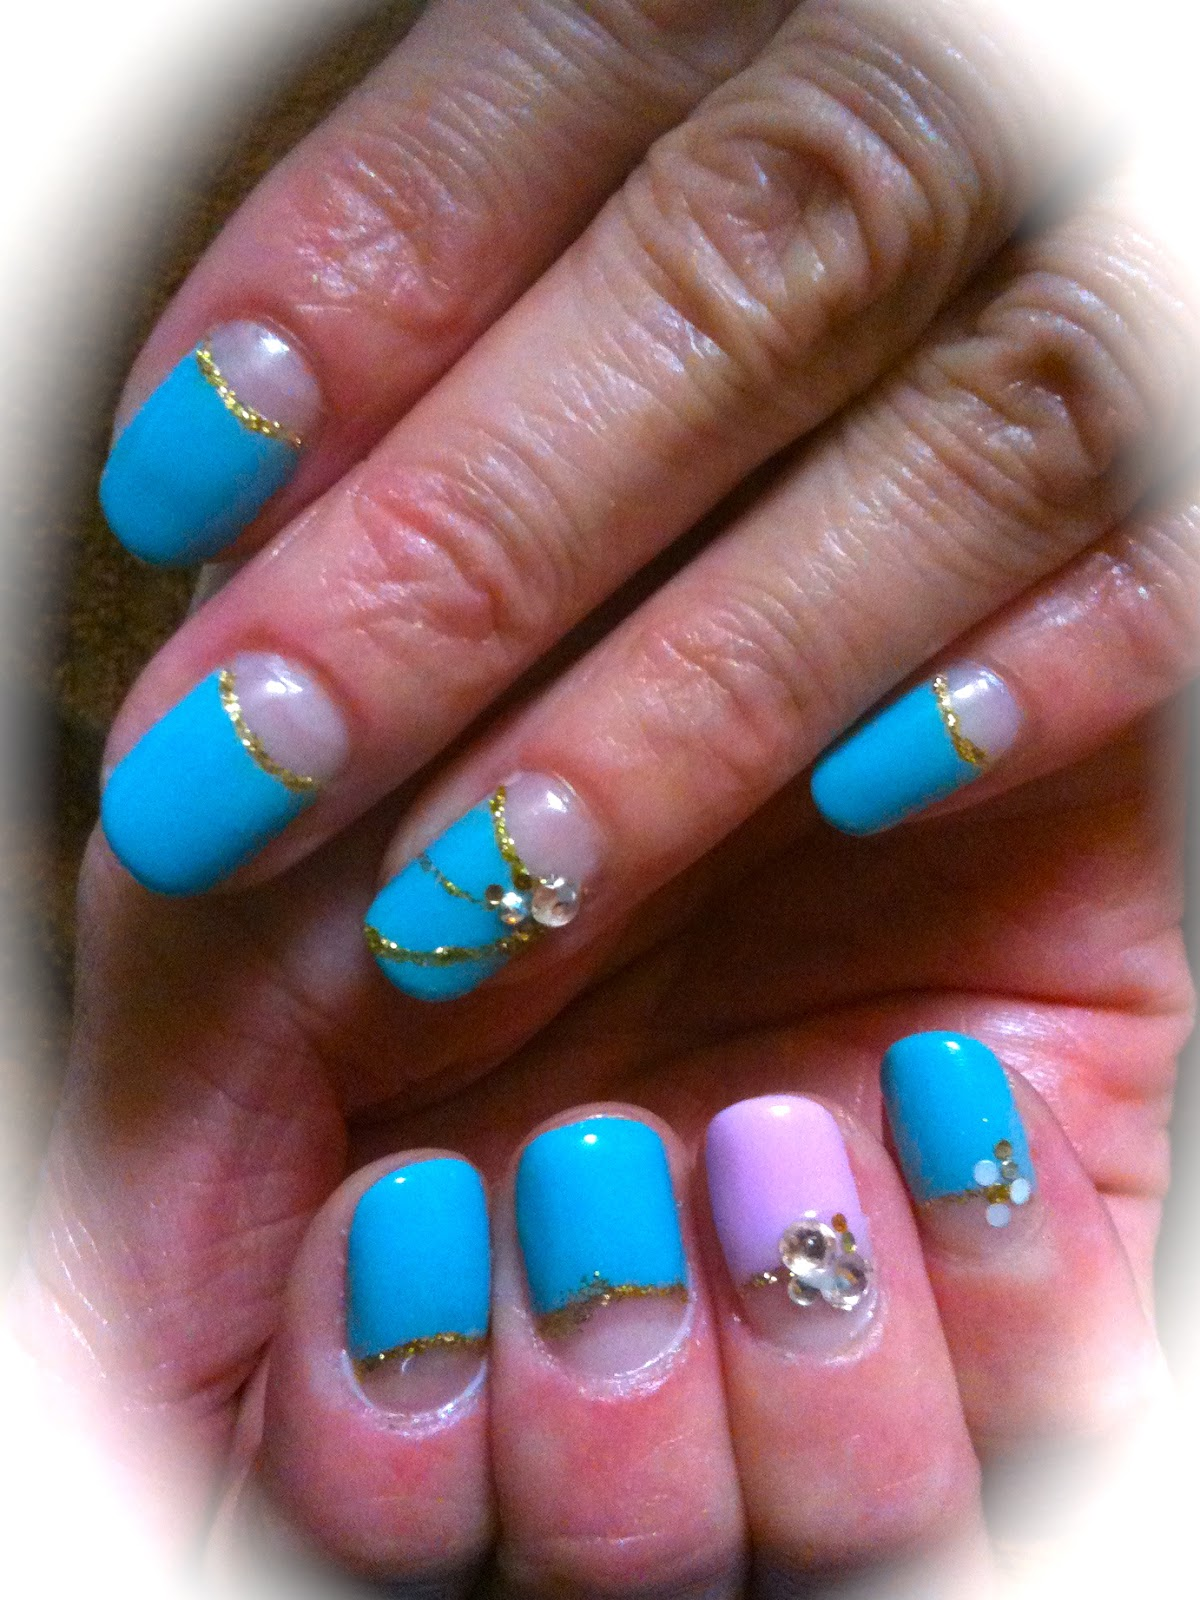 japenese gel nails photo - 1